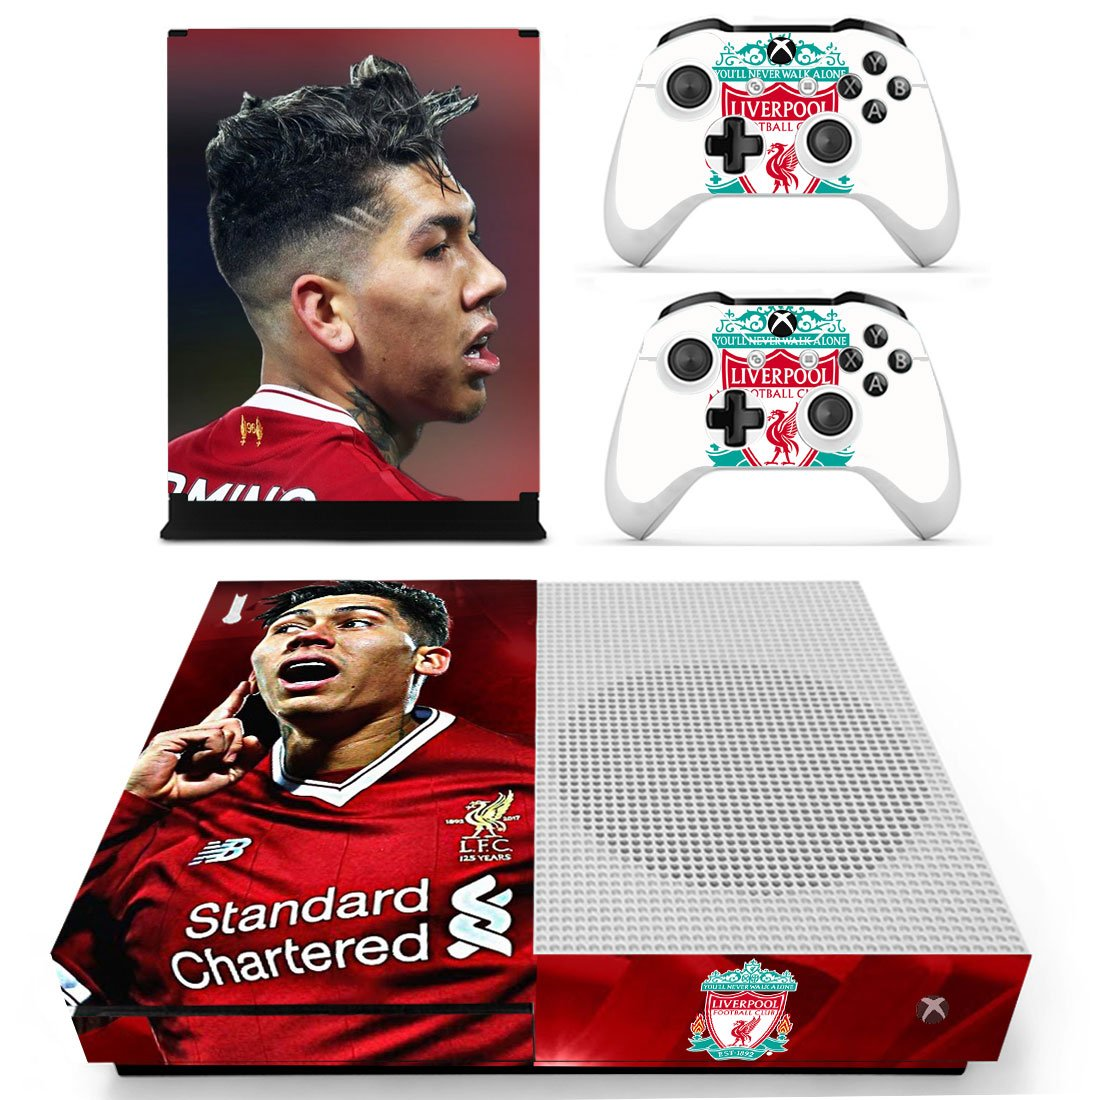 Liverpool Xbox One S Skin Sticker Wrap